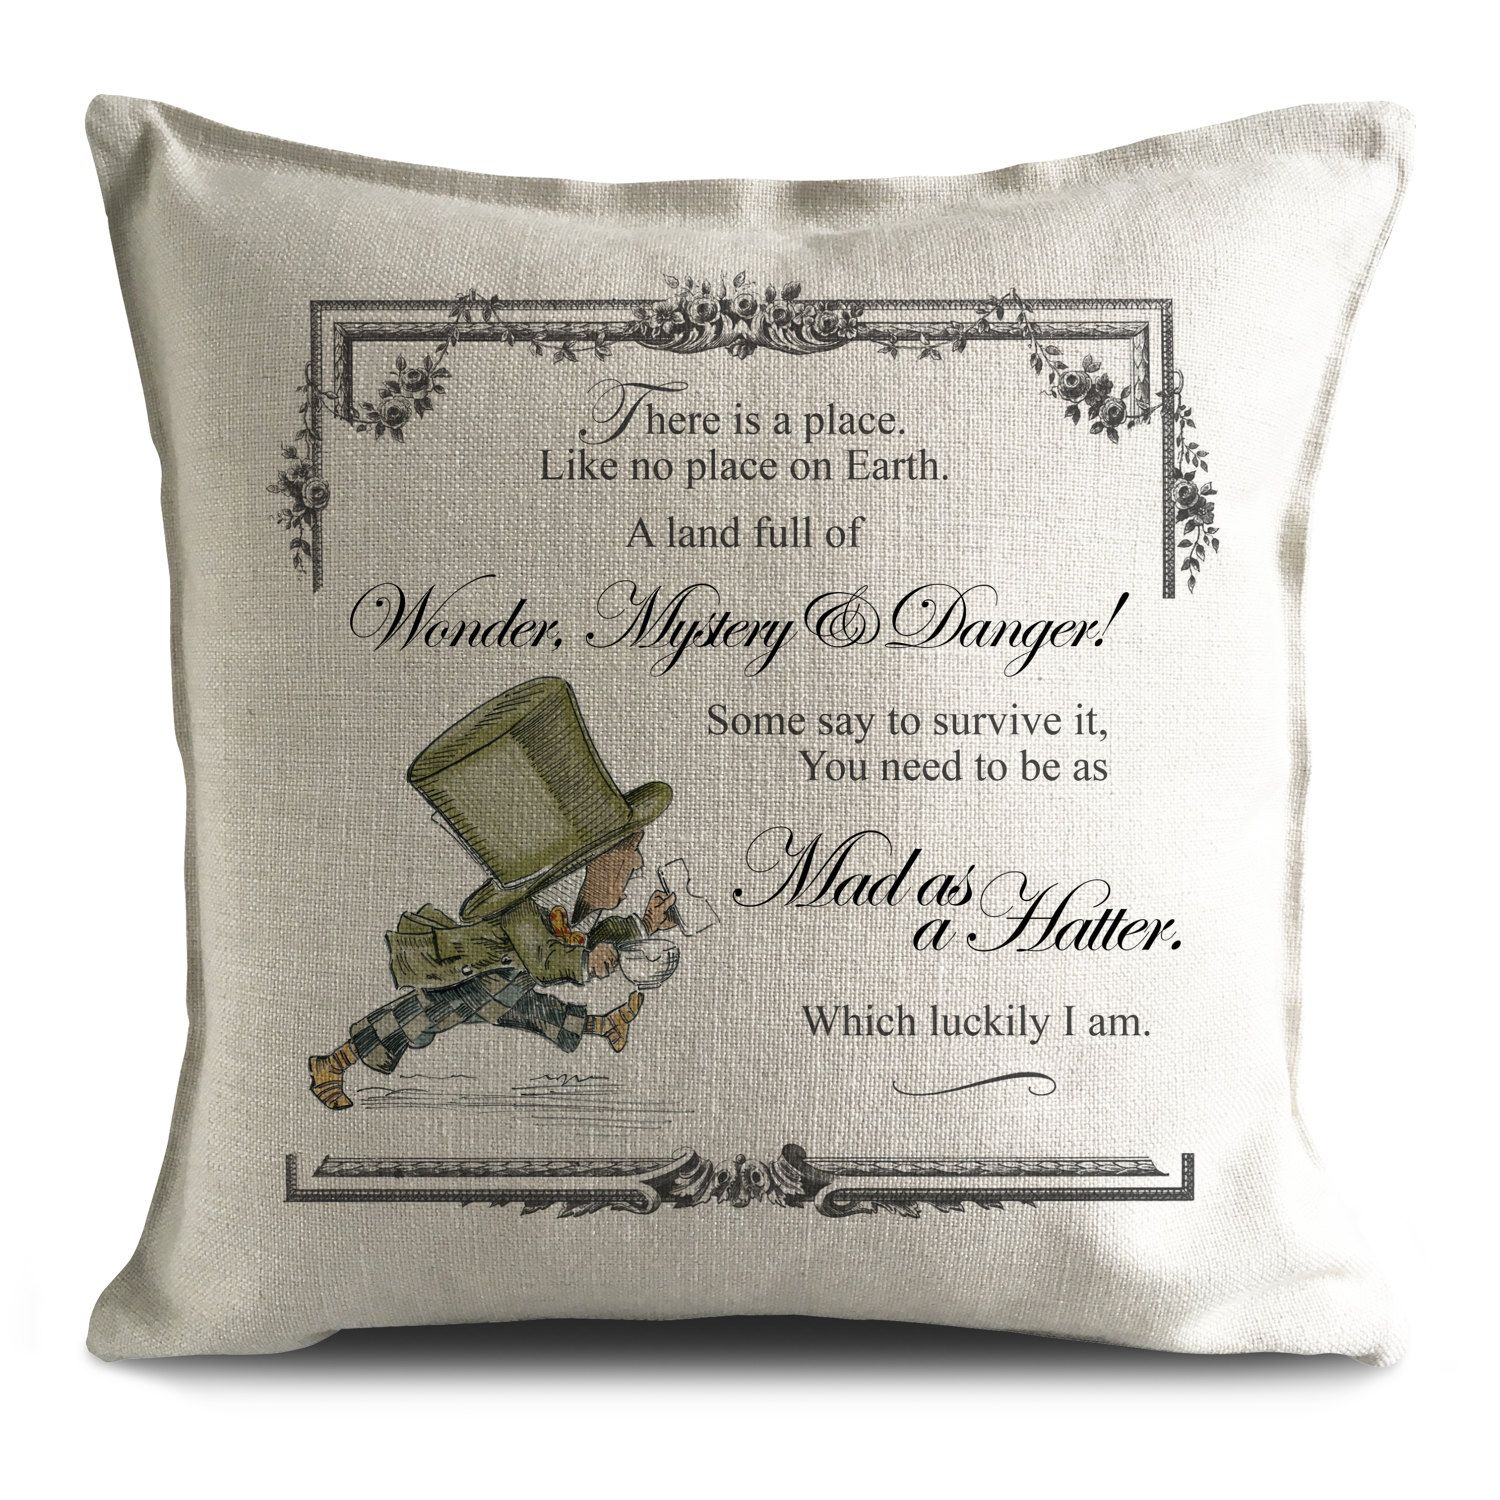 Alice in wonderland cushion cover mad hatter mystery and danger